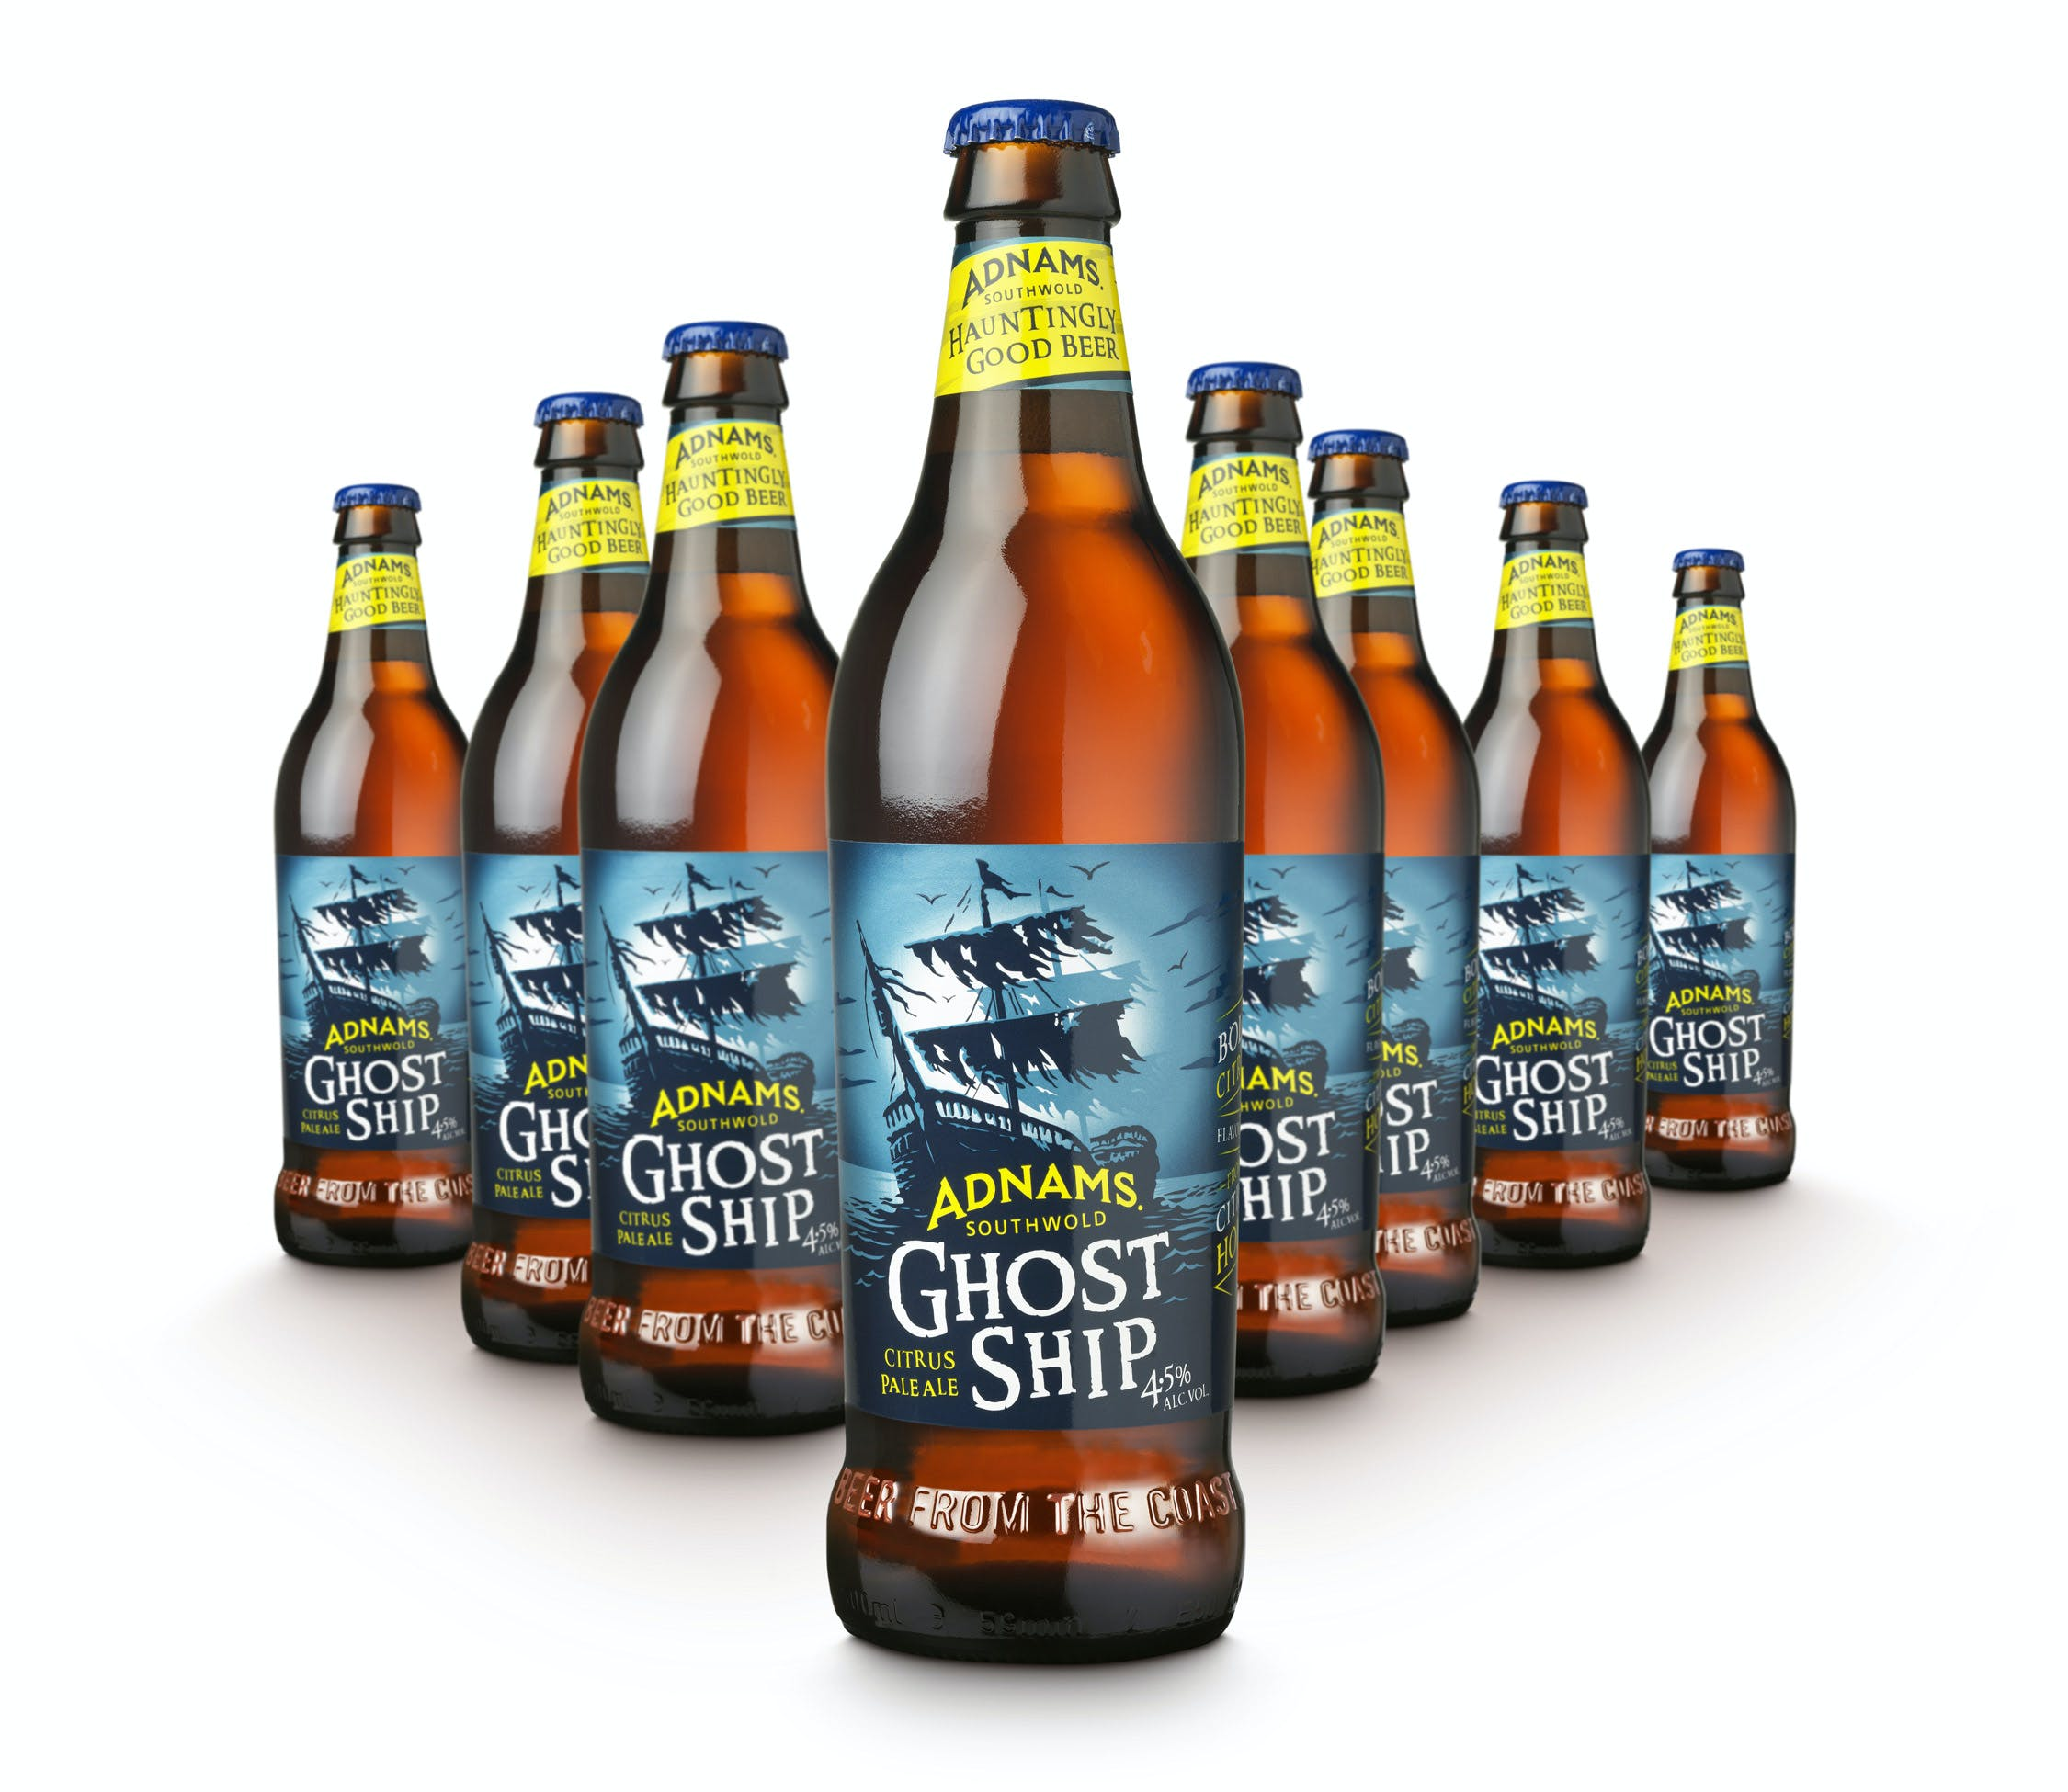 Stockists of Adnams Ghost Ship 0.5%